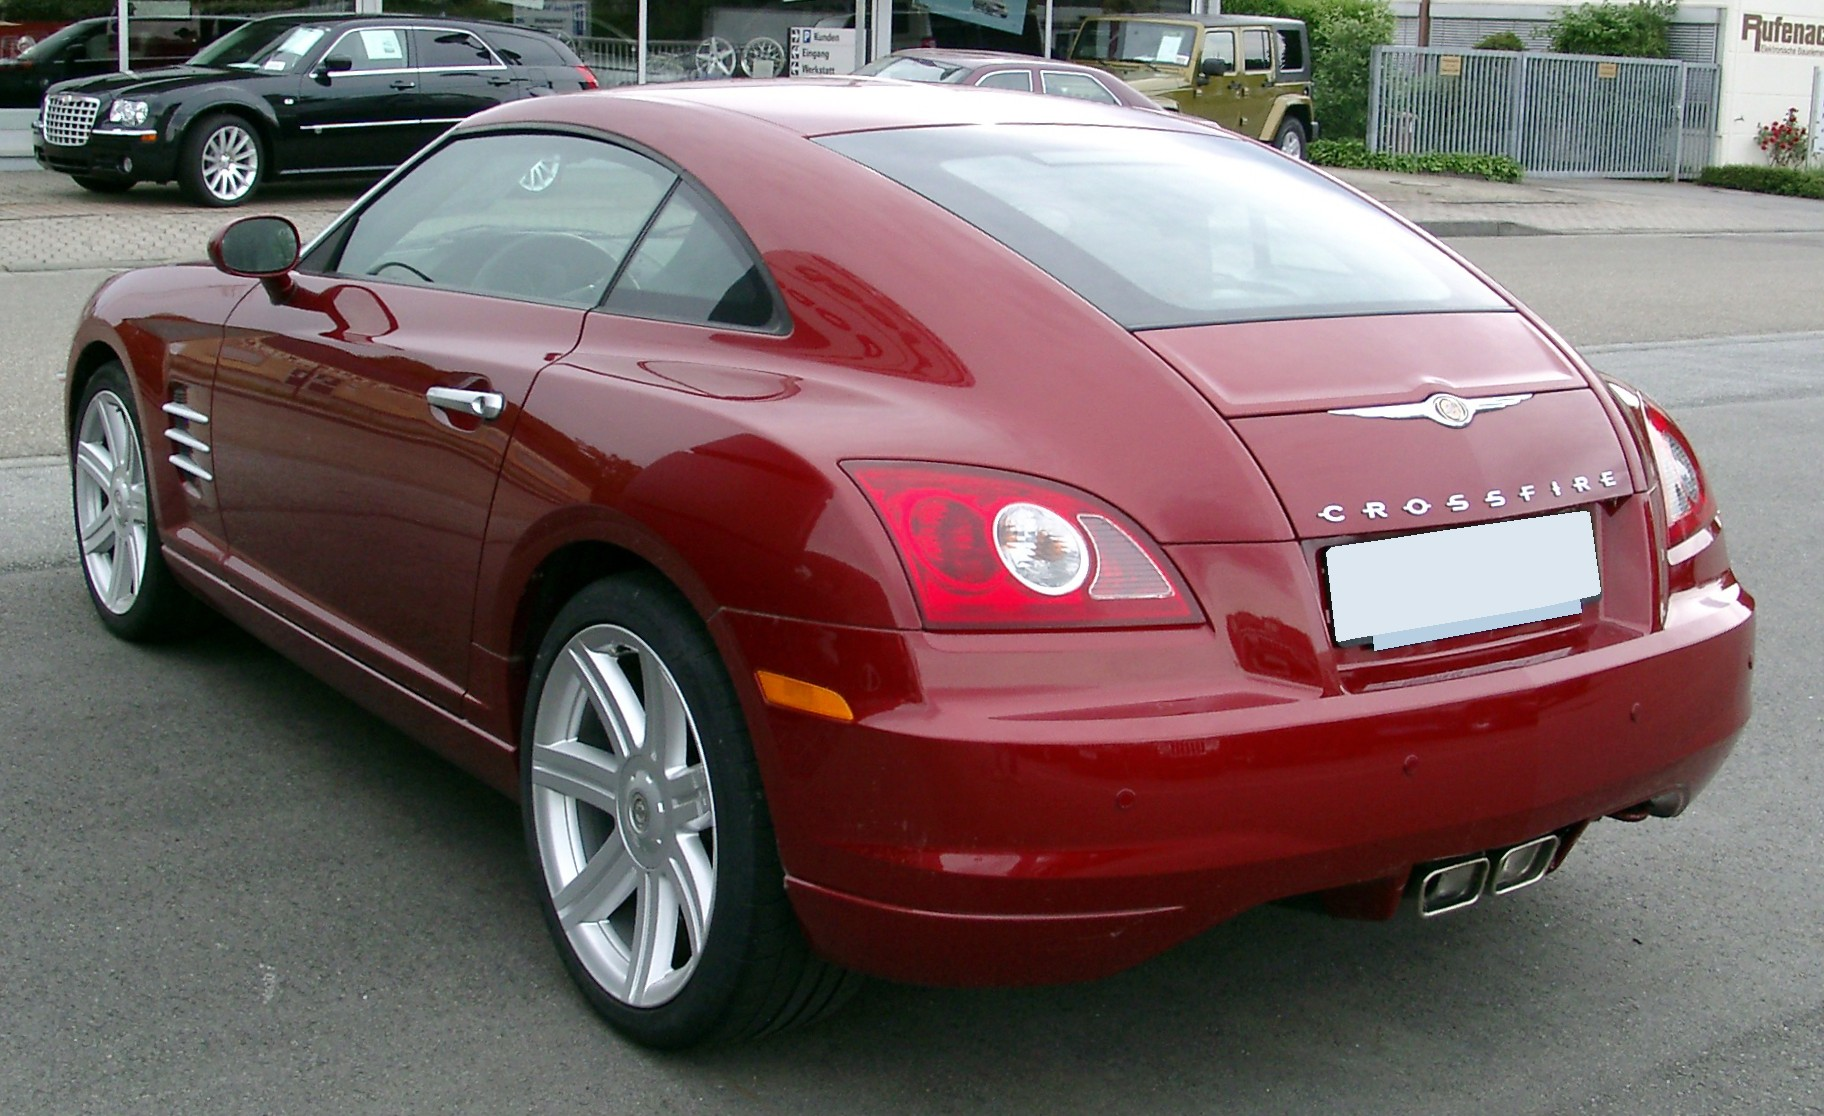 File:Chrysler Crossfire rear 20080517.jpg